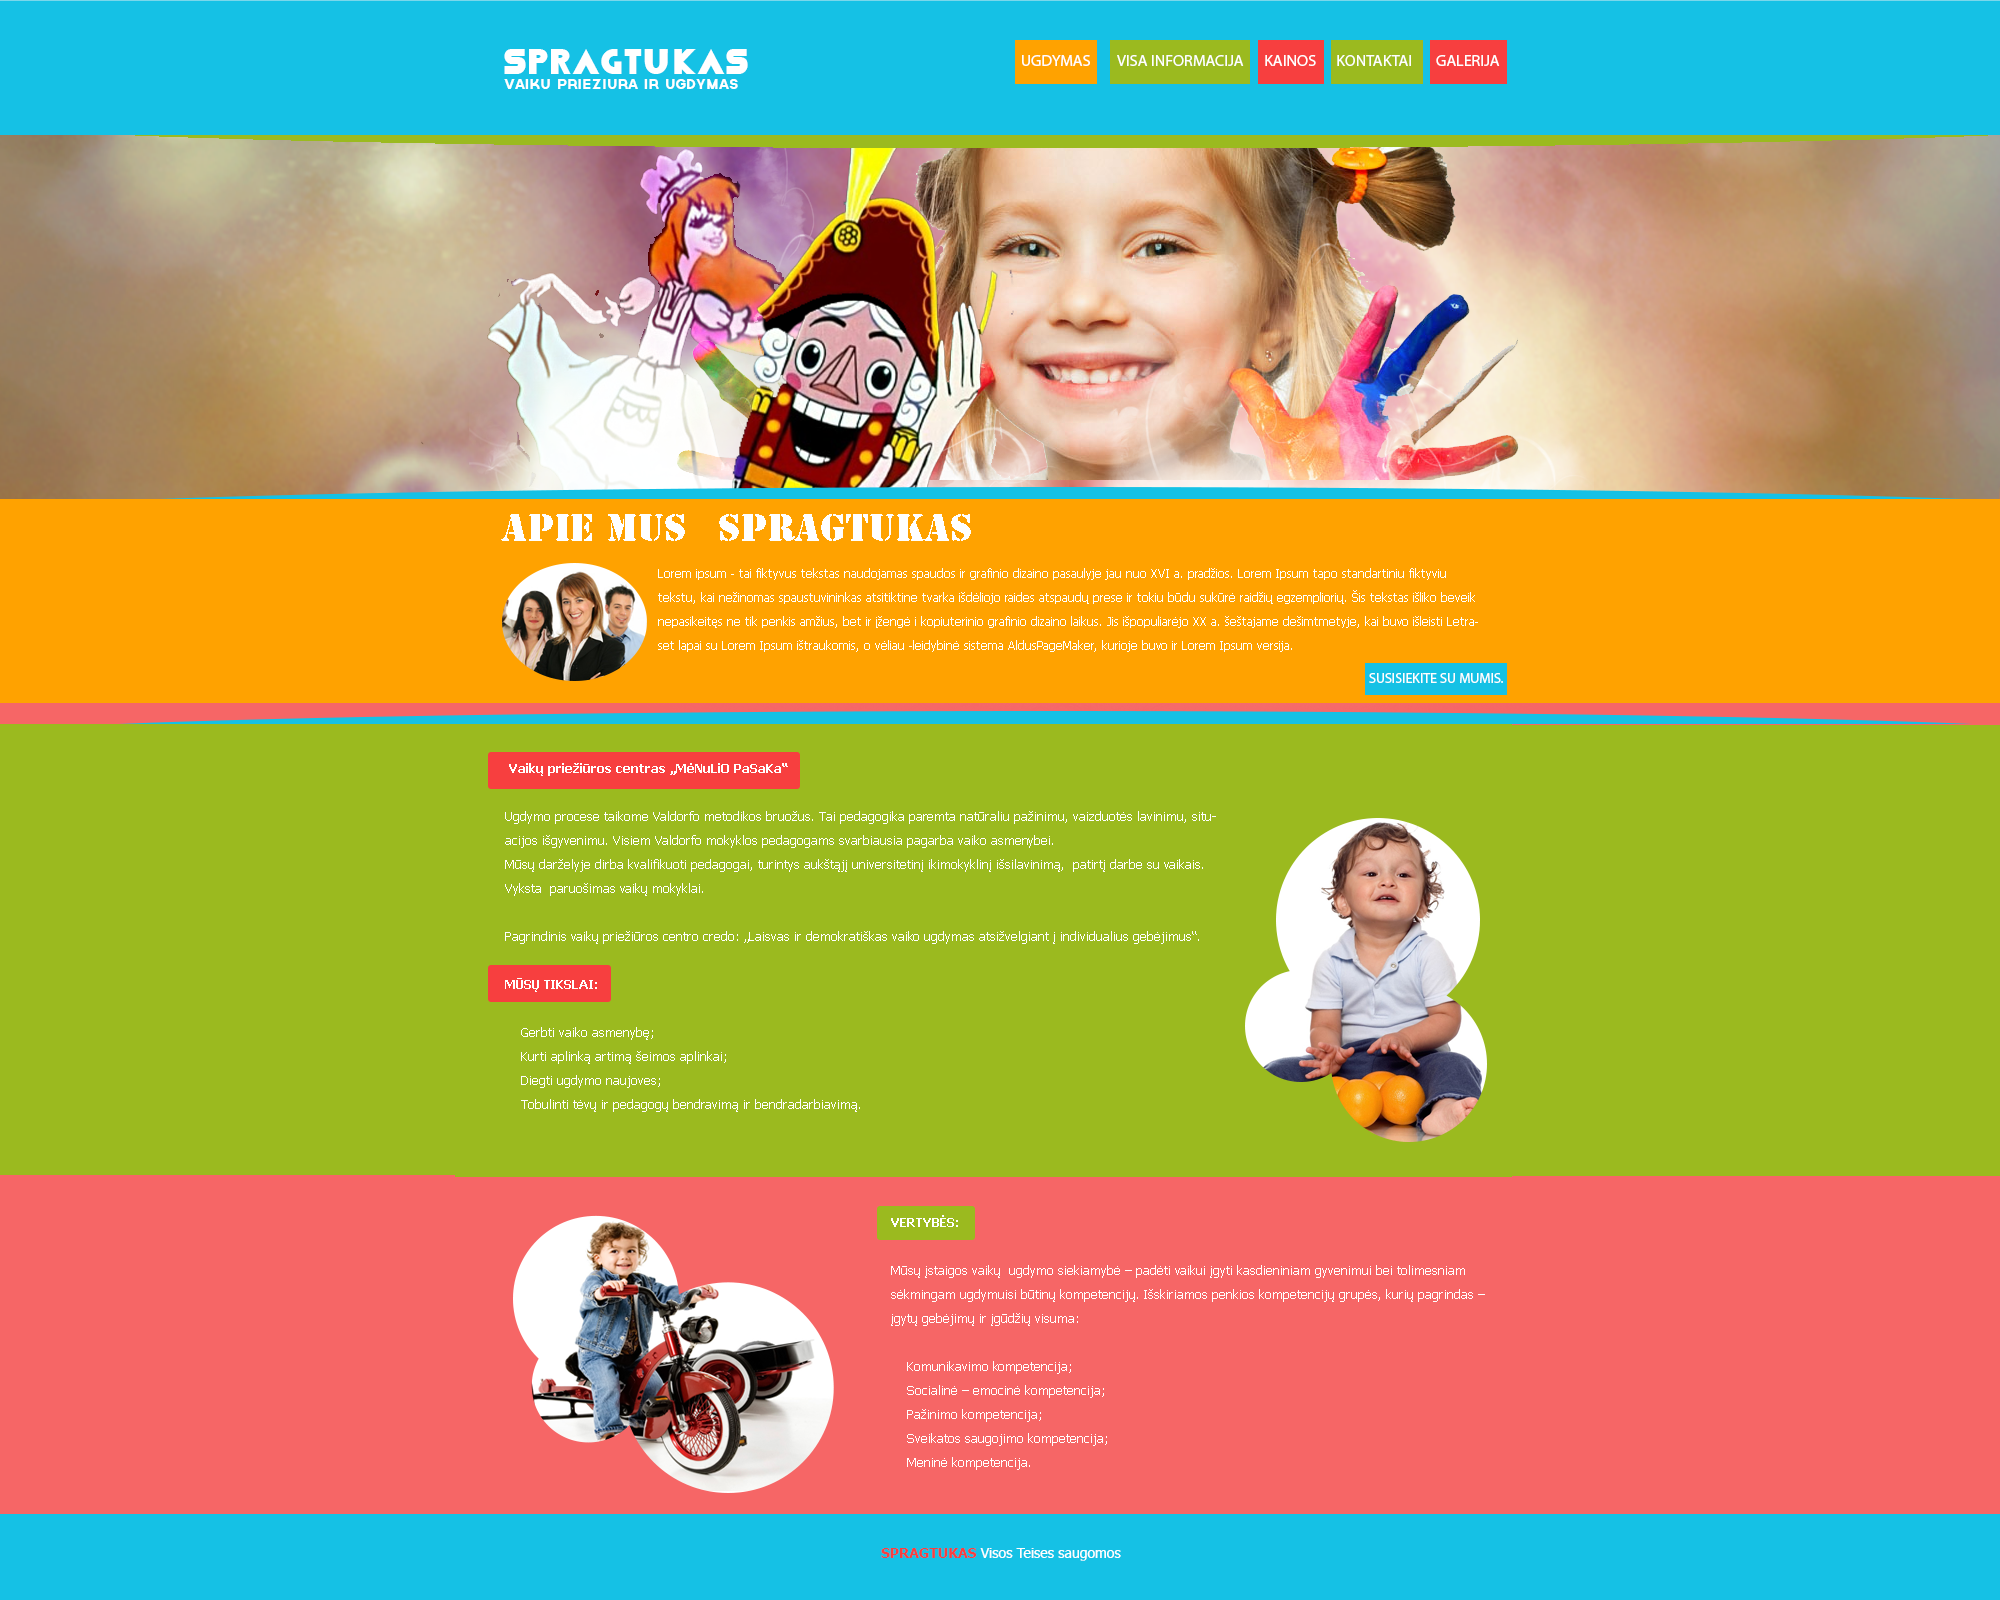 How to design a website for kids -  Spragtukas Web Design For Kids By Treakart